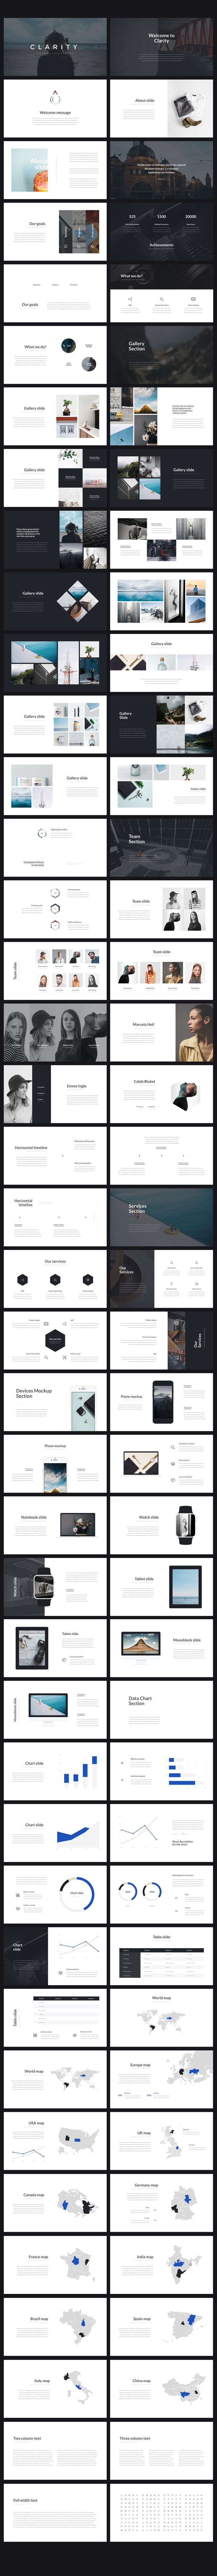 Clarity PowerPoint Template by Entersge on @creativemarket